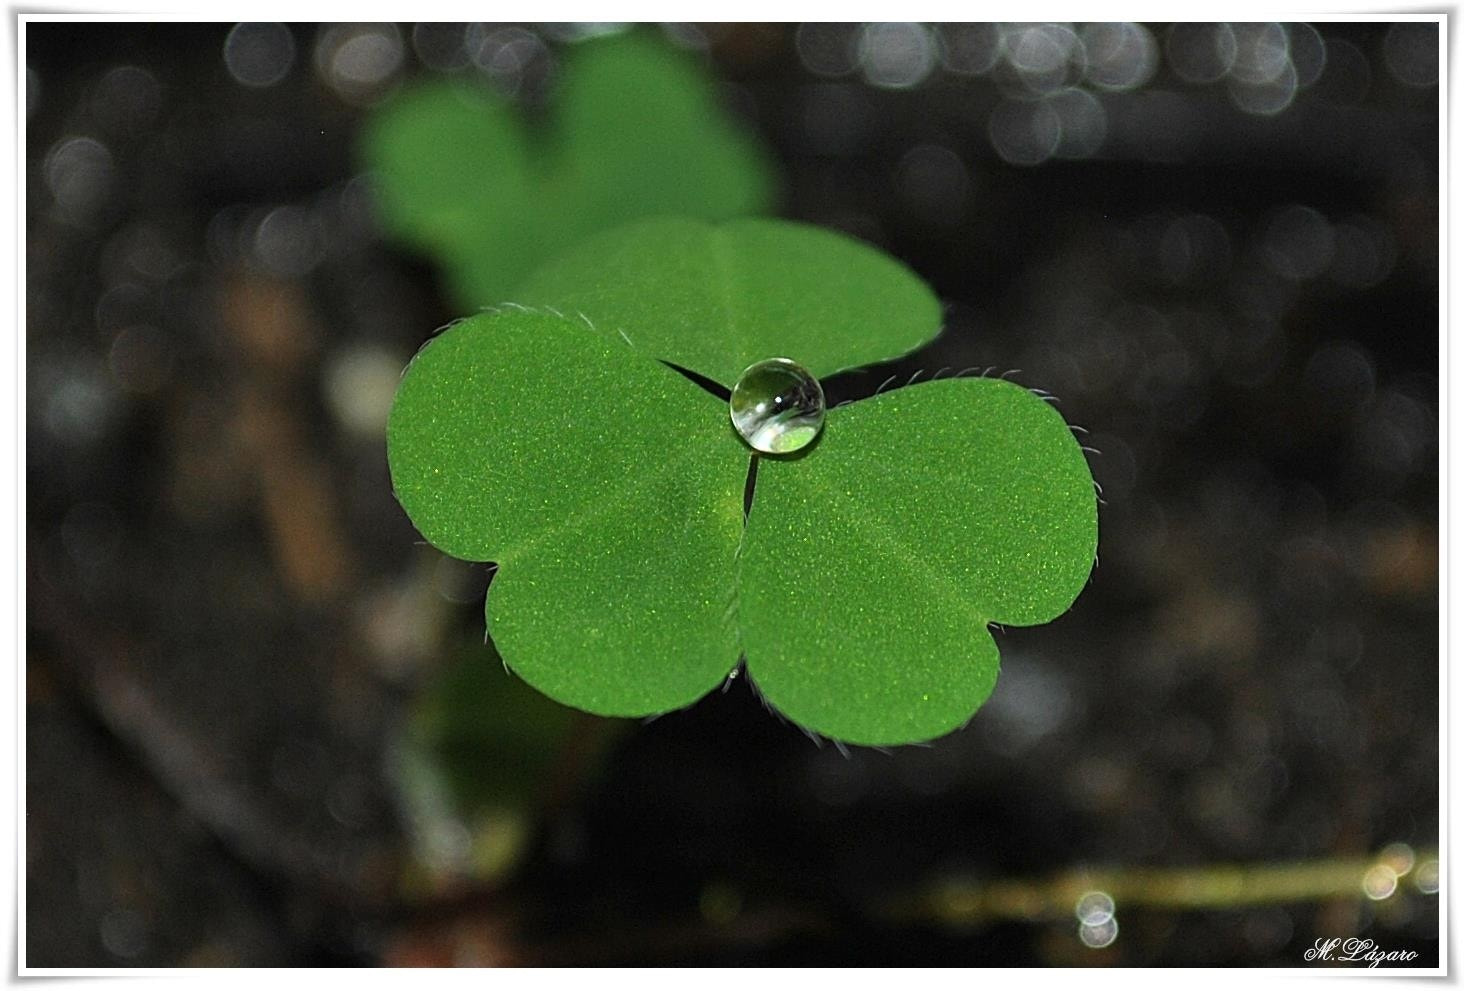 Photograph Clover by Marian LMartin on 500px